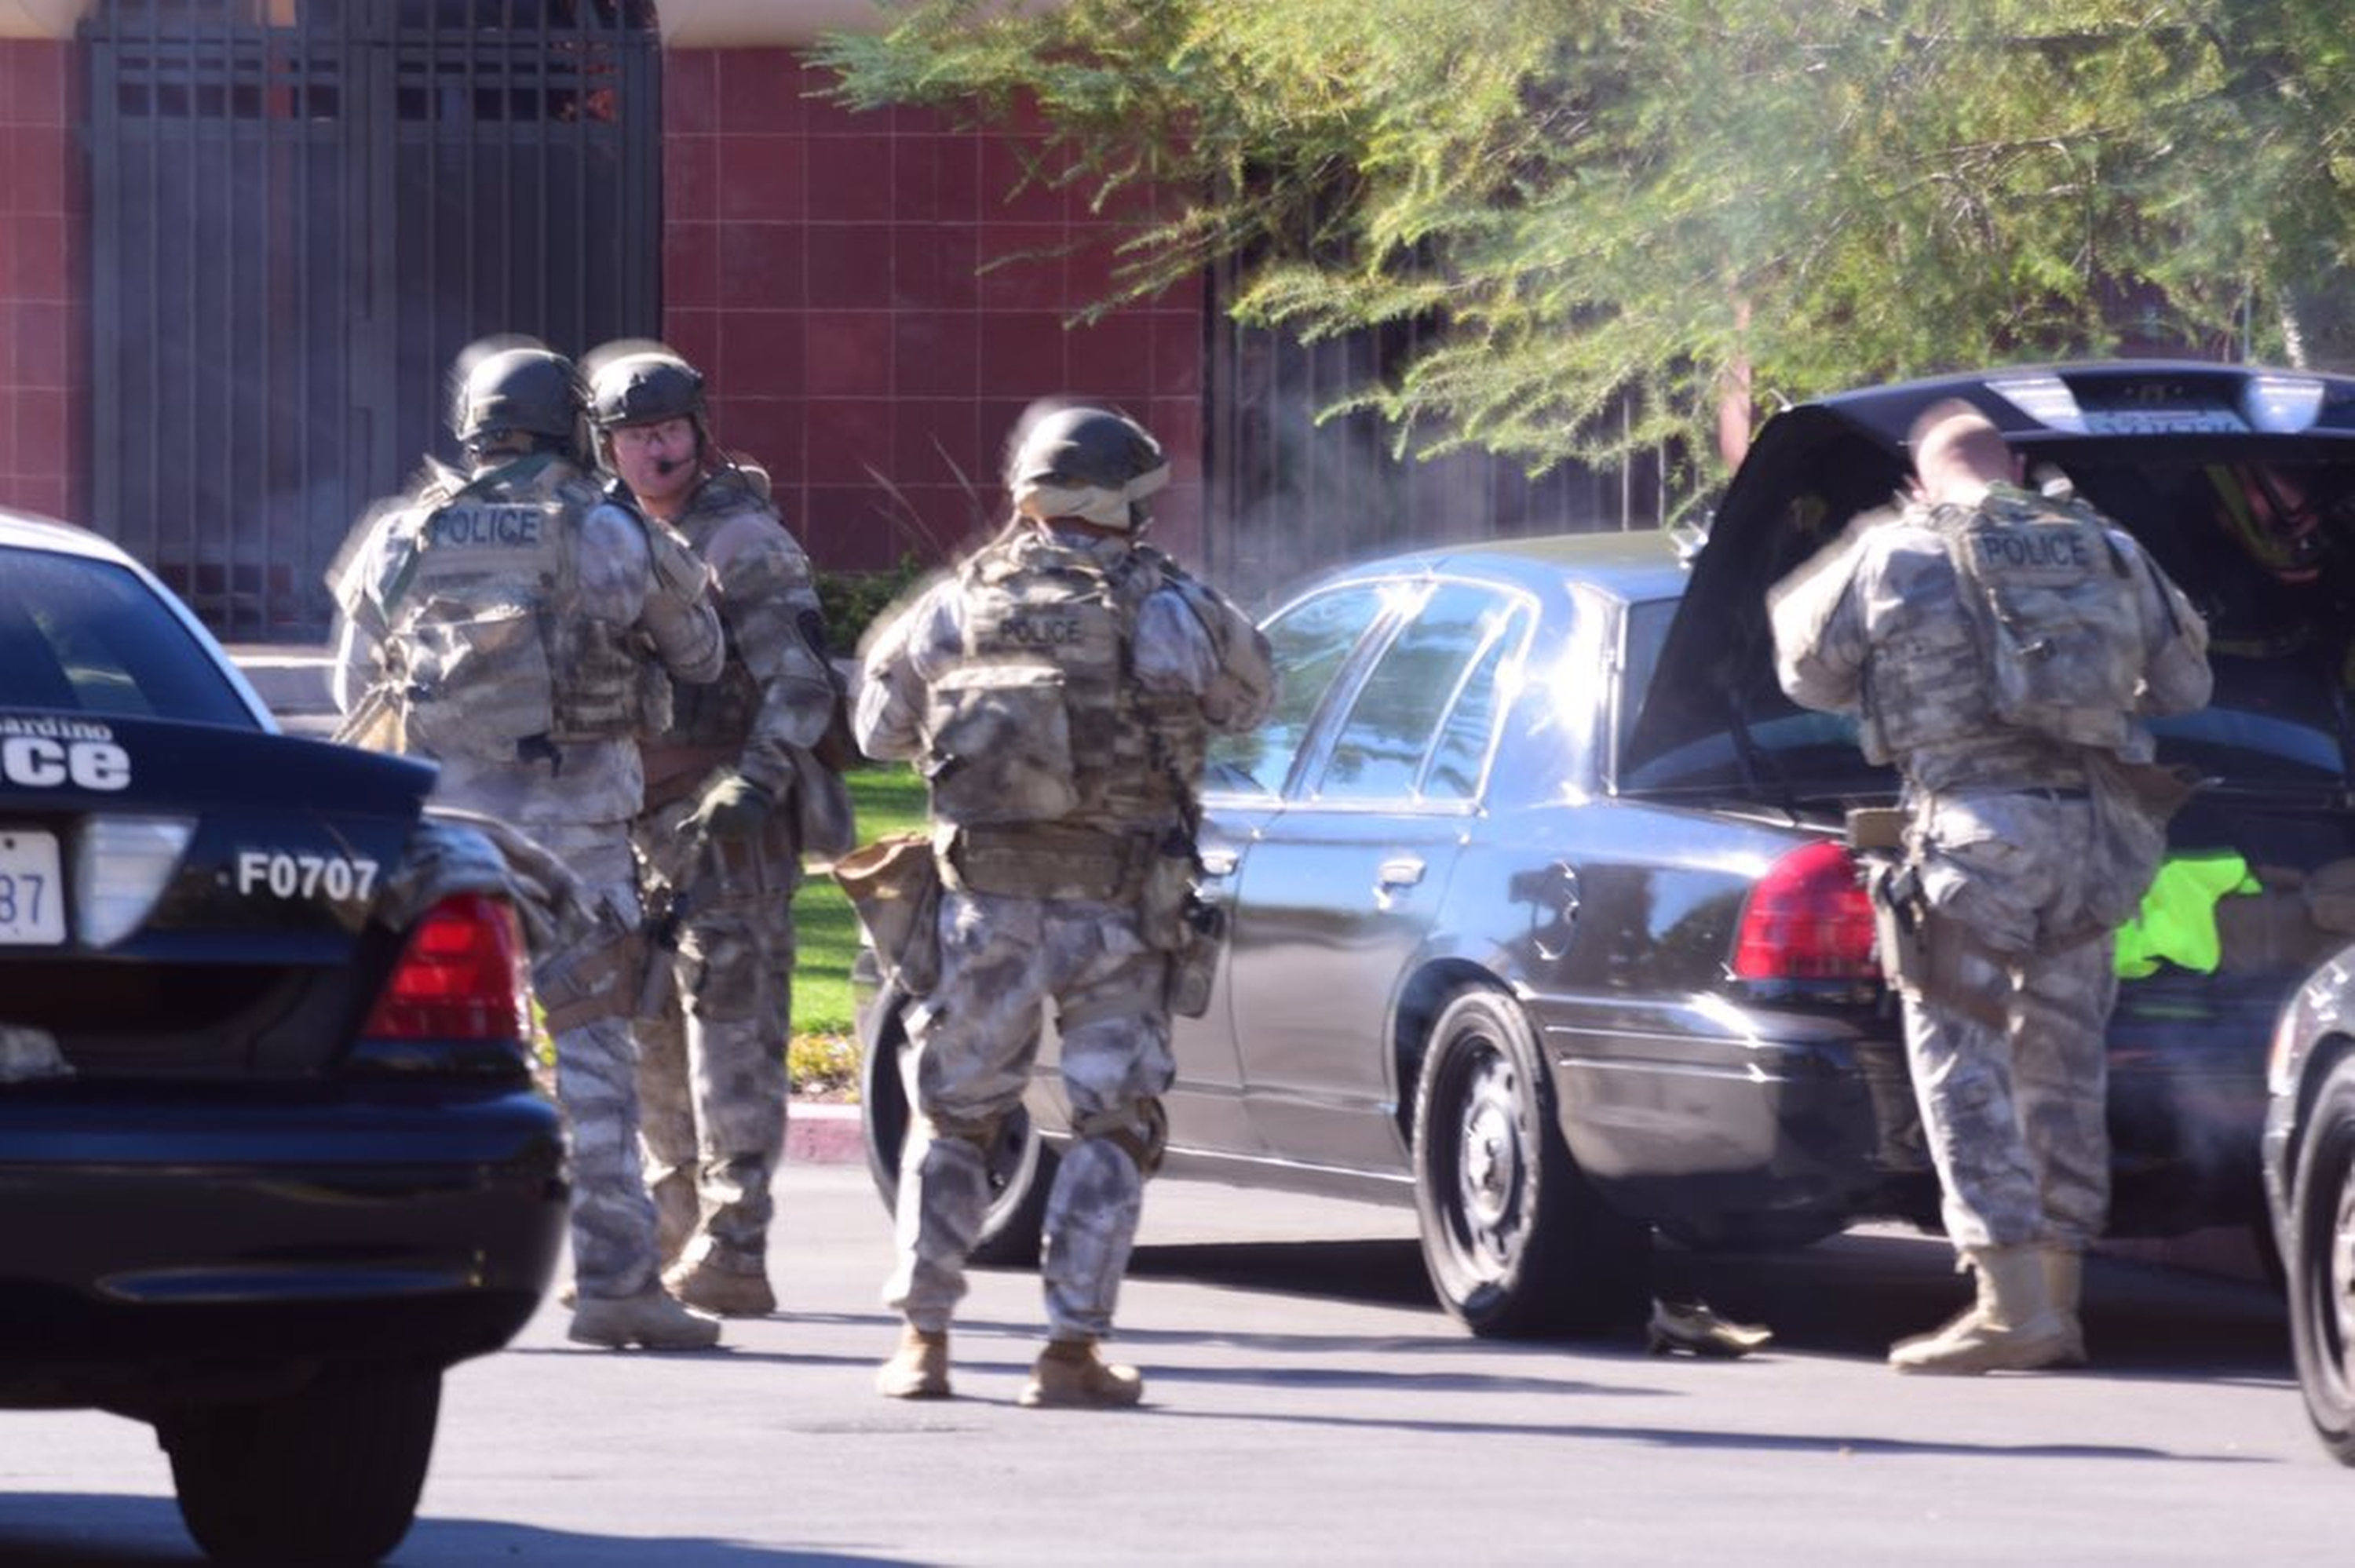 A swat team arrives at the scene of a shooting in San Bernardino, Calif. on Wednesday,  Dec. 2, 2015.  Police responded to reports of an active shooter at a social services facility. (Doug Saunders/Los Angeles News Group via AP)